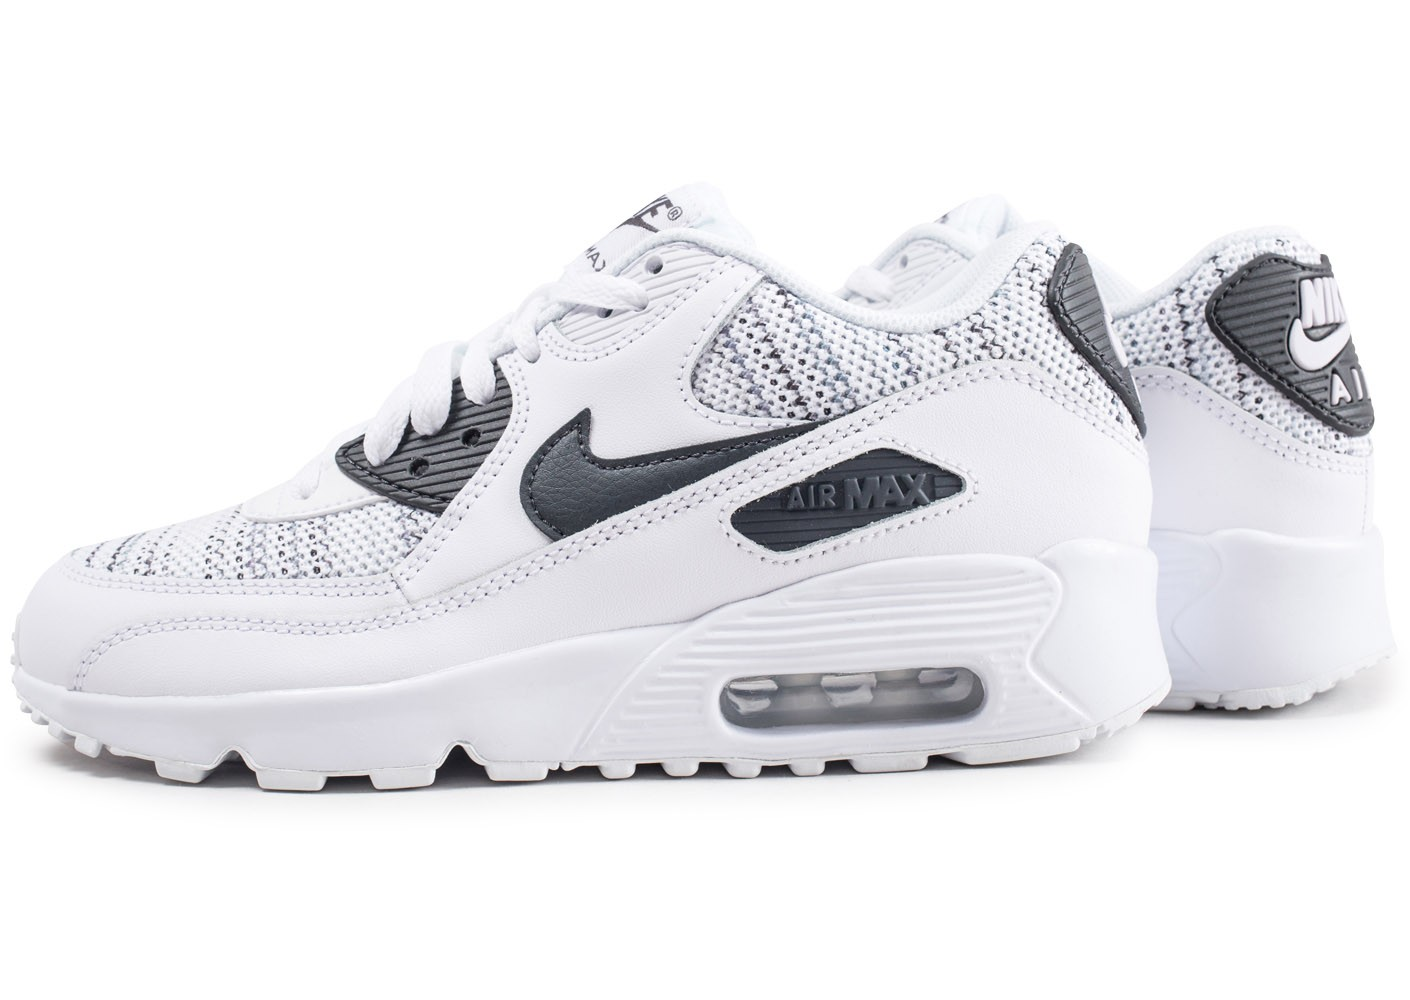 magasin en ligne aa871 422aa Nike Air Max 90 Mesh blanche et grise junior - Chaussures ...